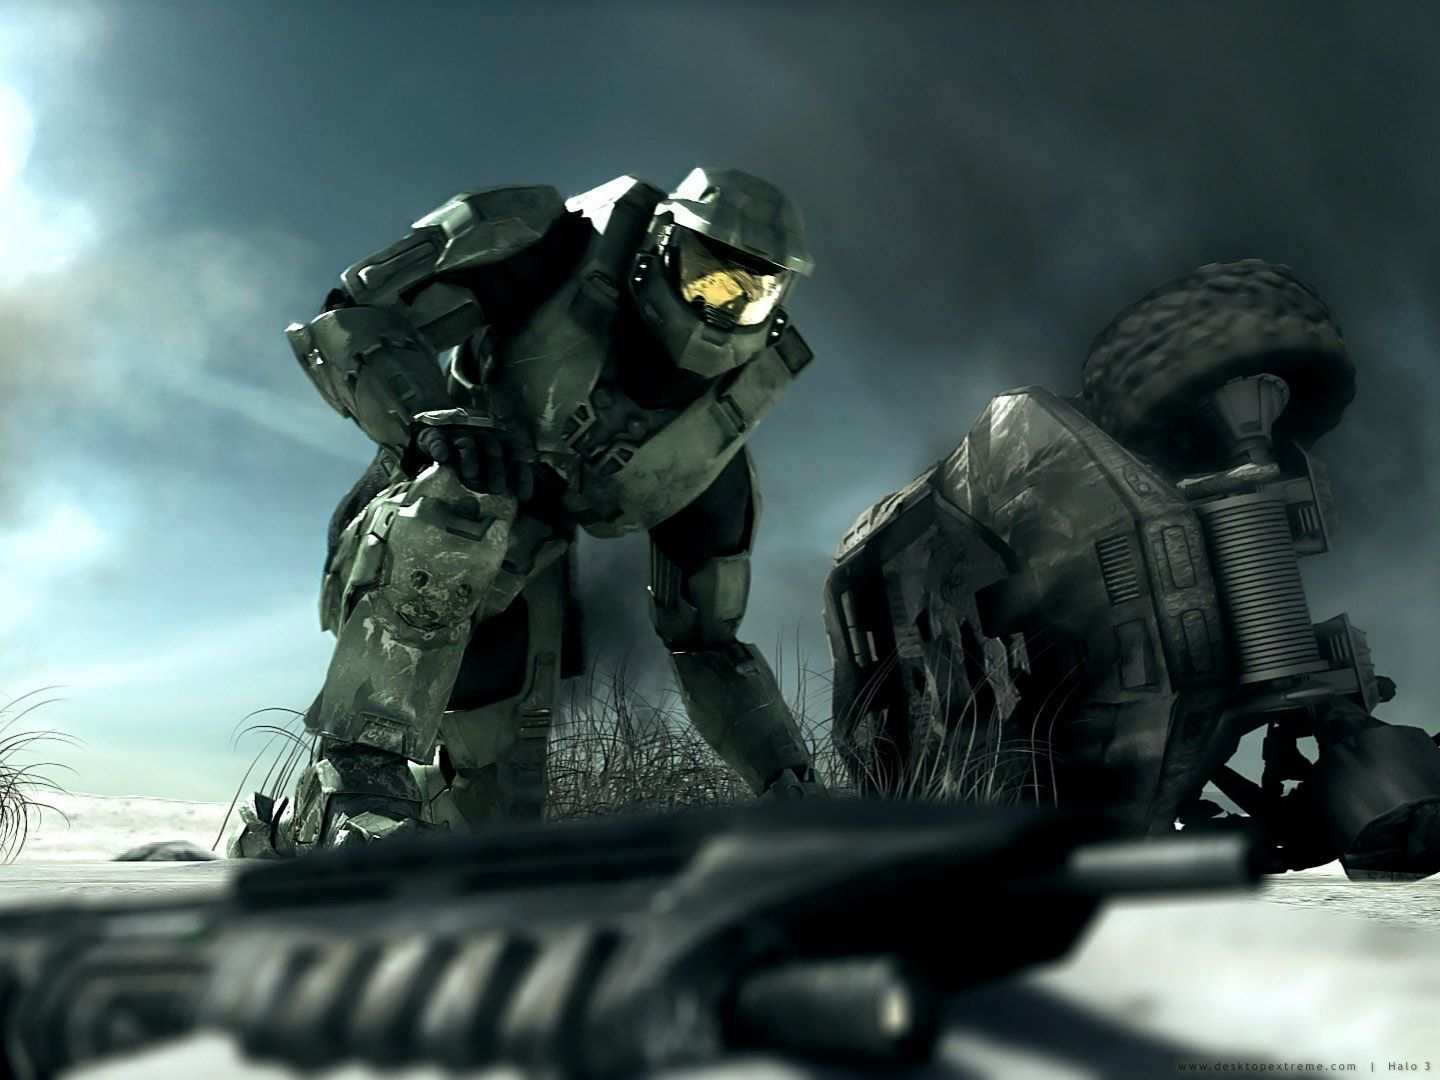 Hd Wallpapers Games 1080i Widescreen Halo Game Halo 3